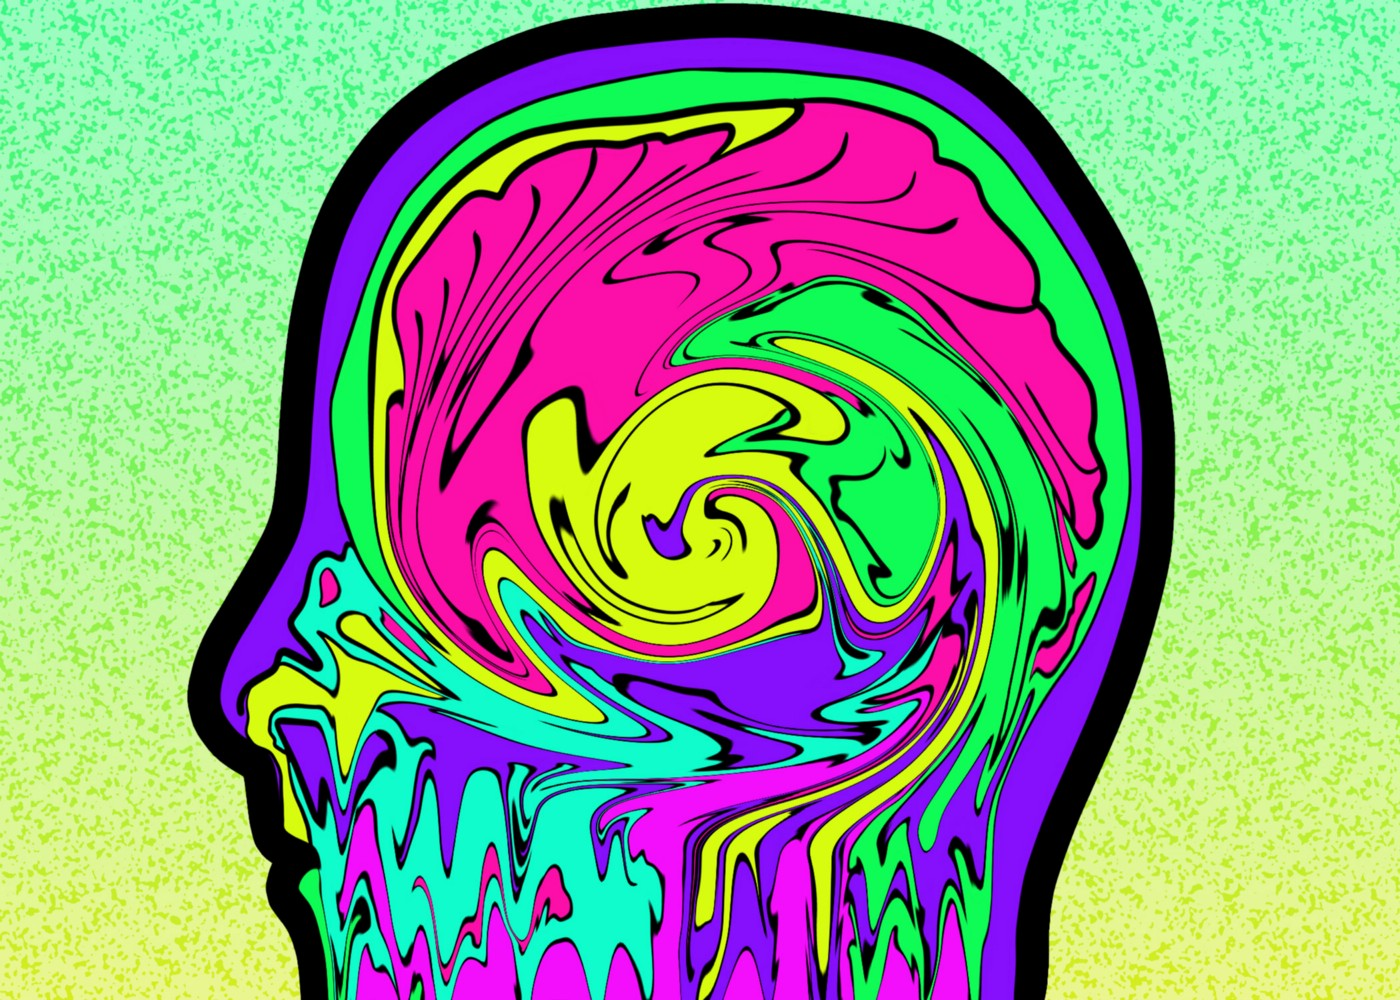 Digital drawing of a silhouetted head with swirls of pink, yellow, green, purple, and blue inside where the brain would be.